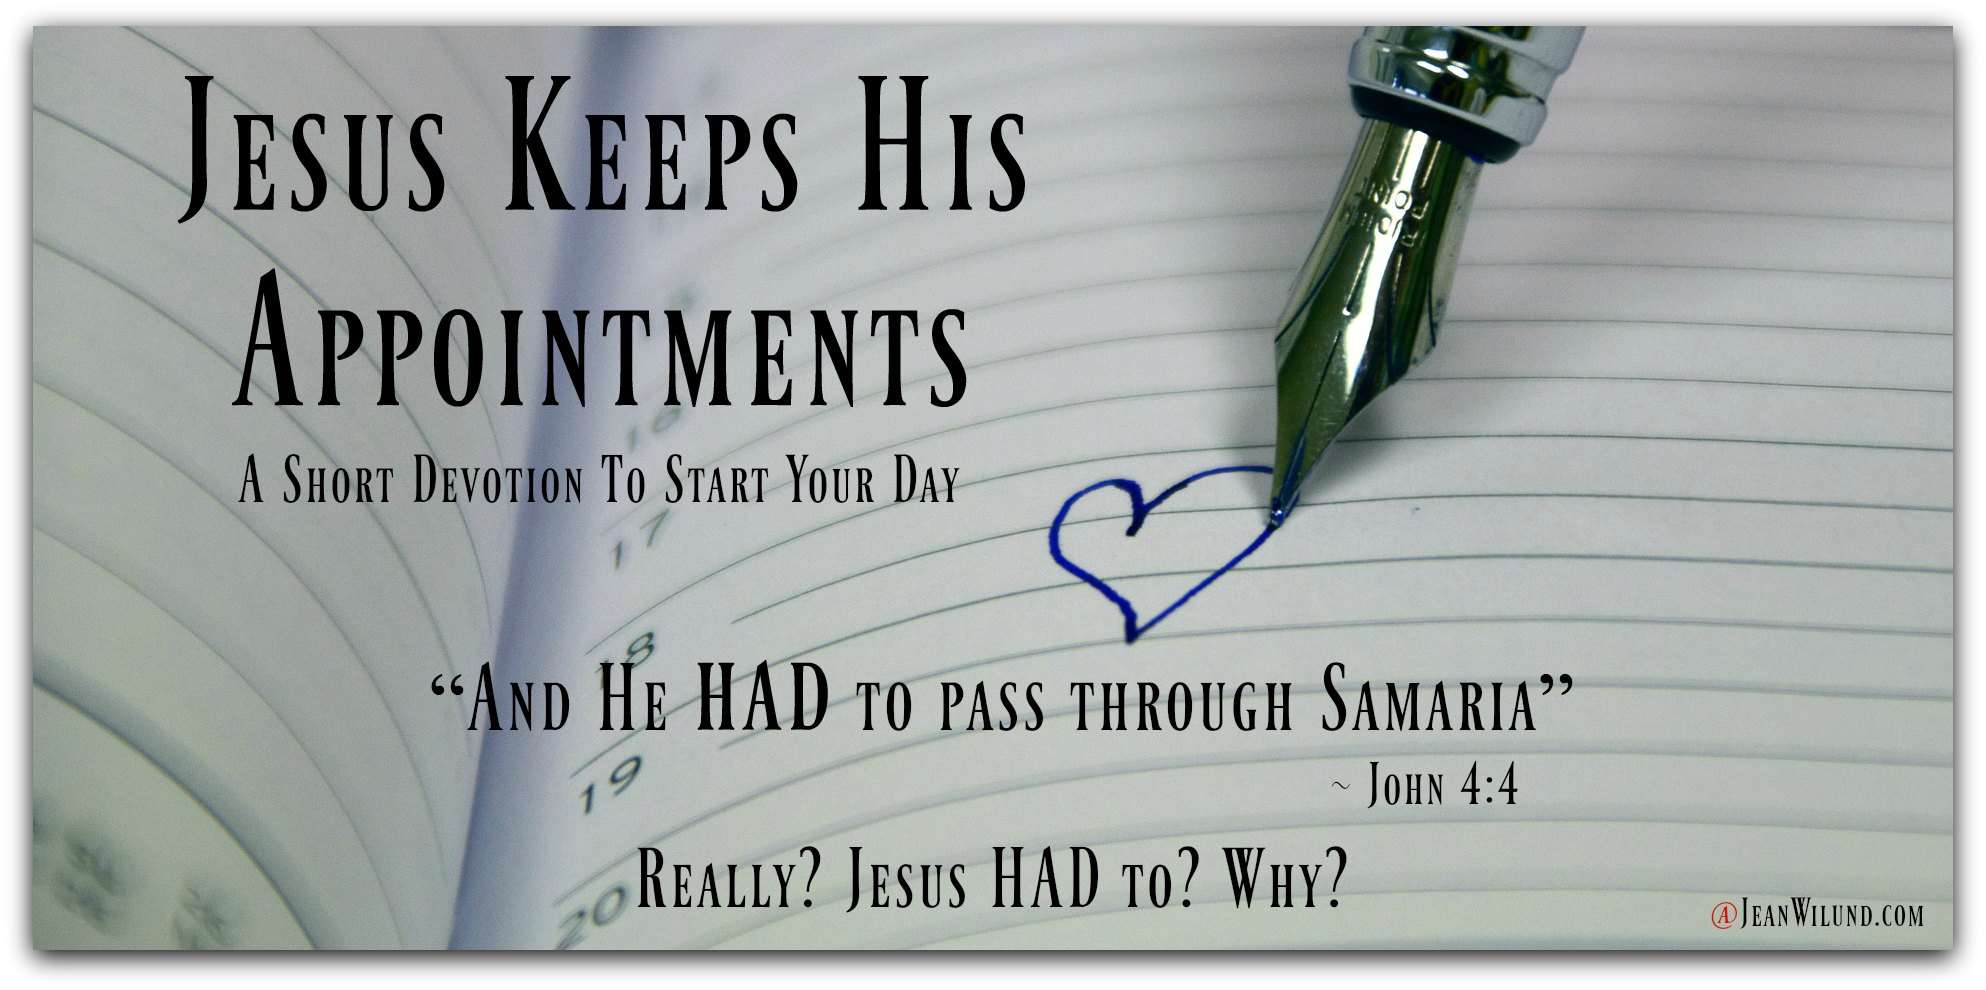 Jesus Keeps His Appointments